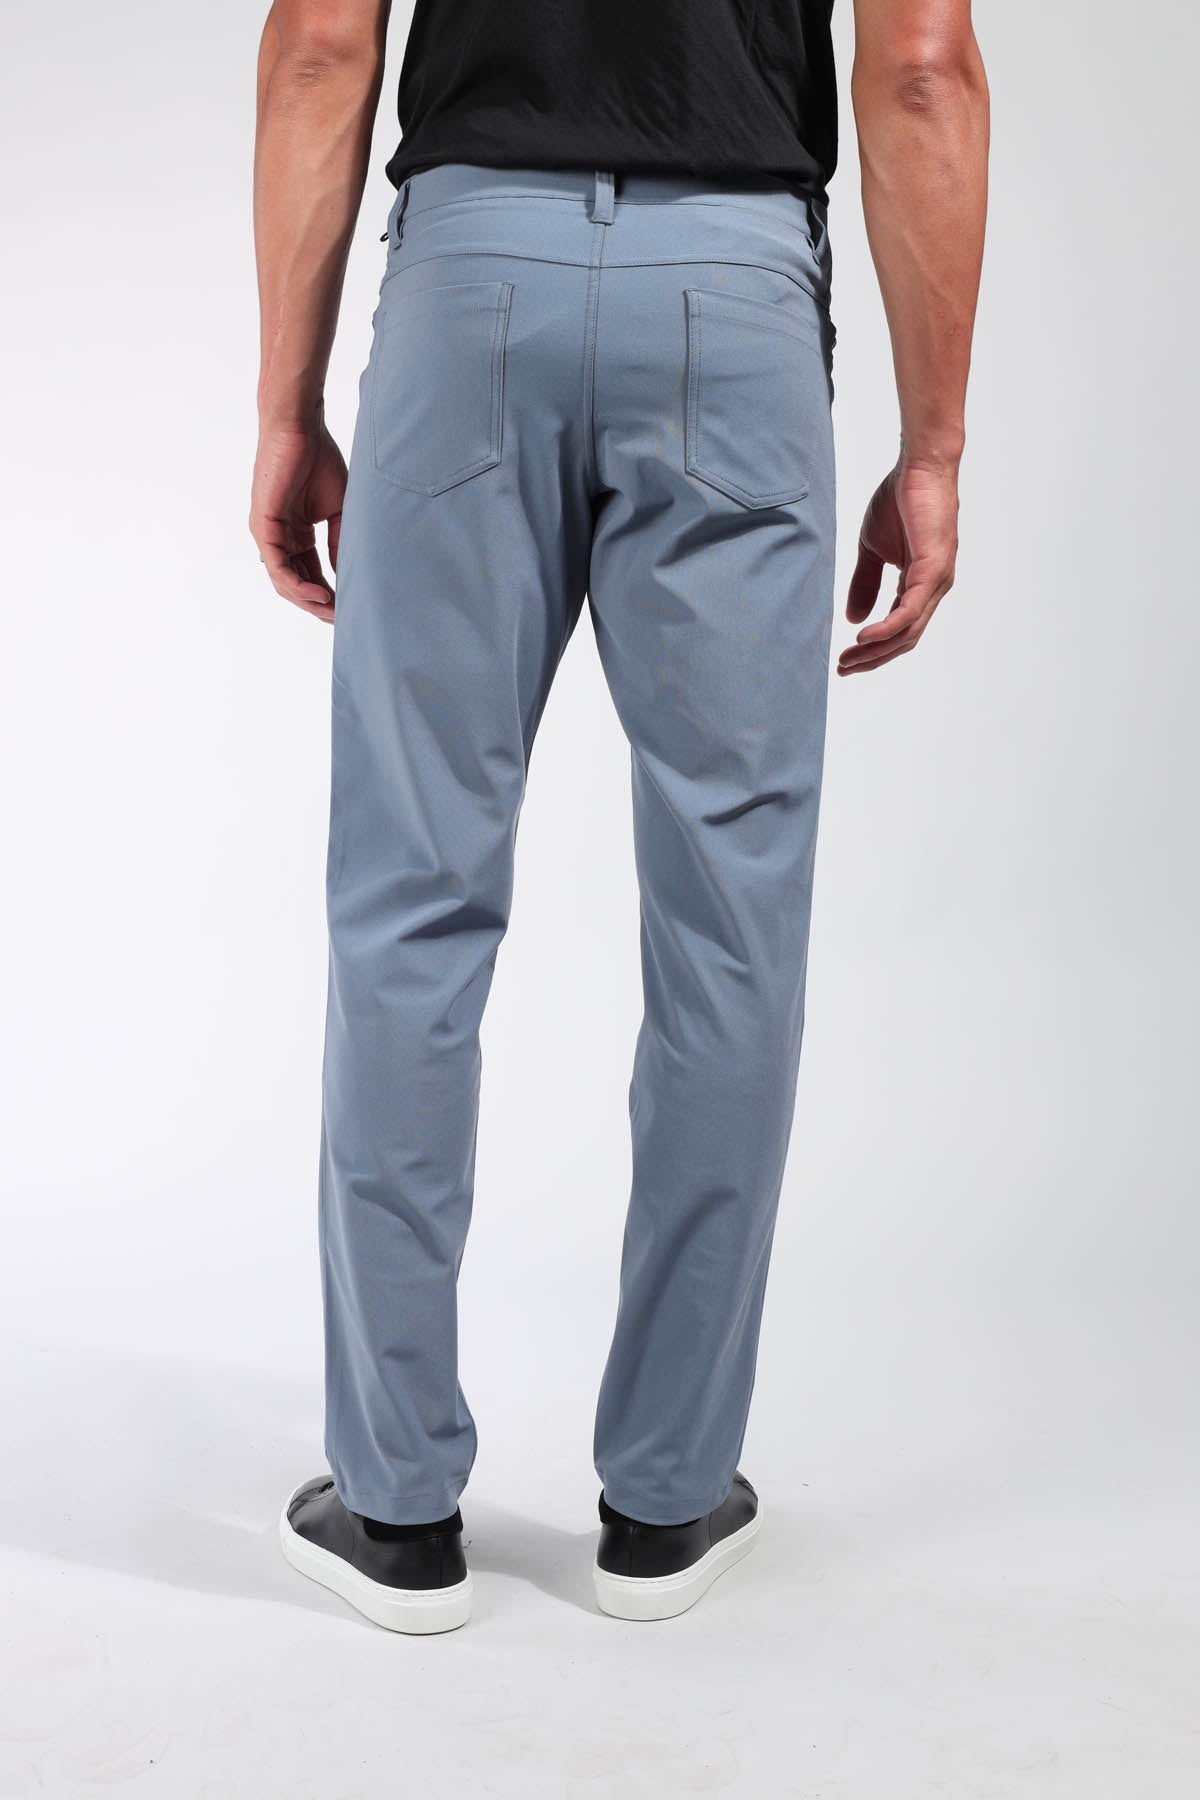 Load image into Gallery viewer, Voyager Pant - Haze Blue